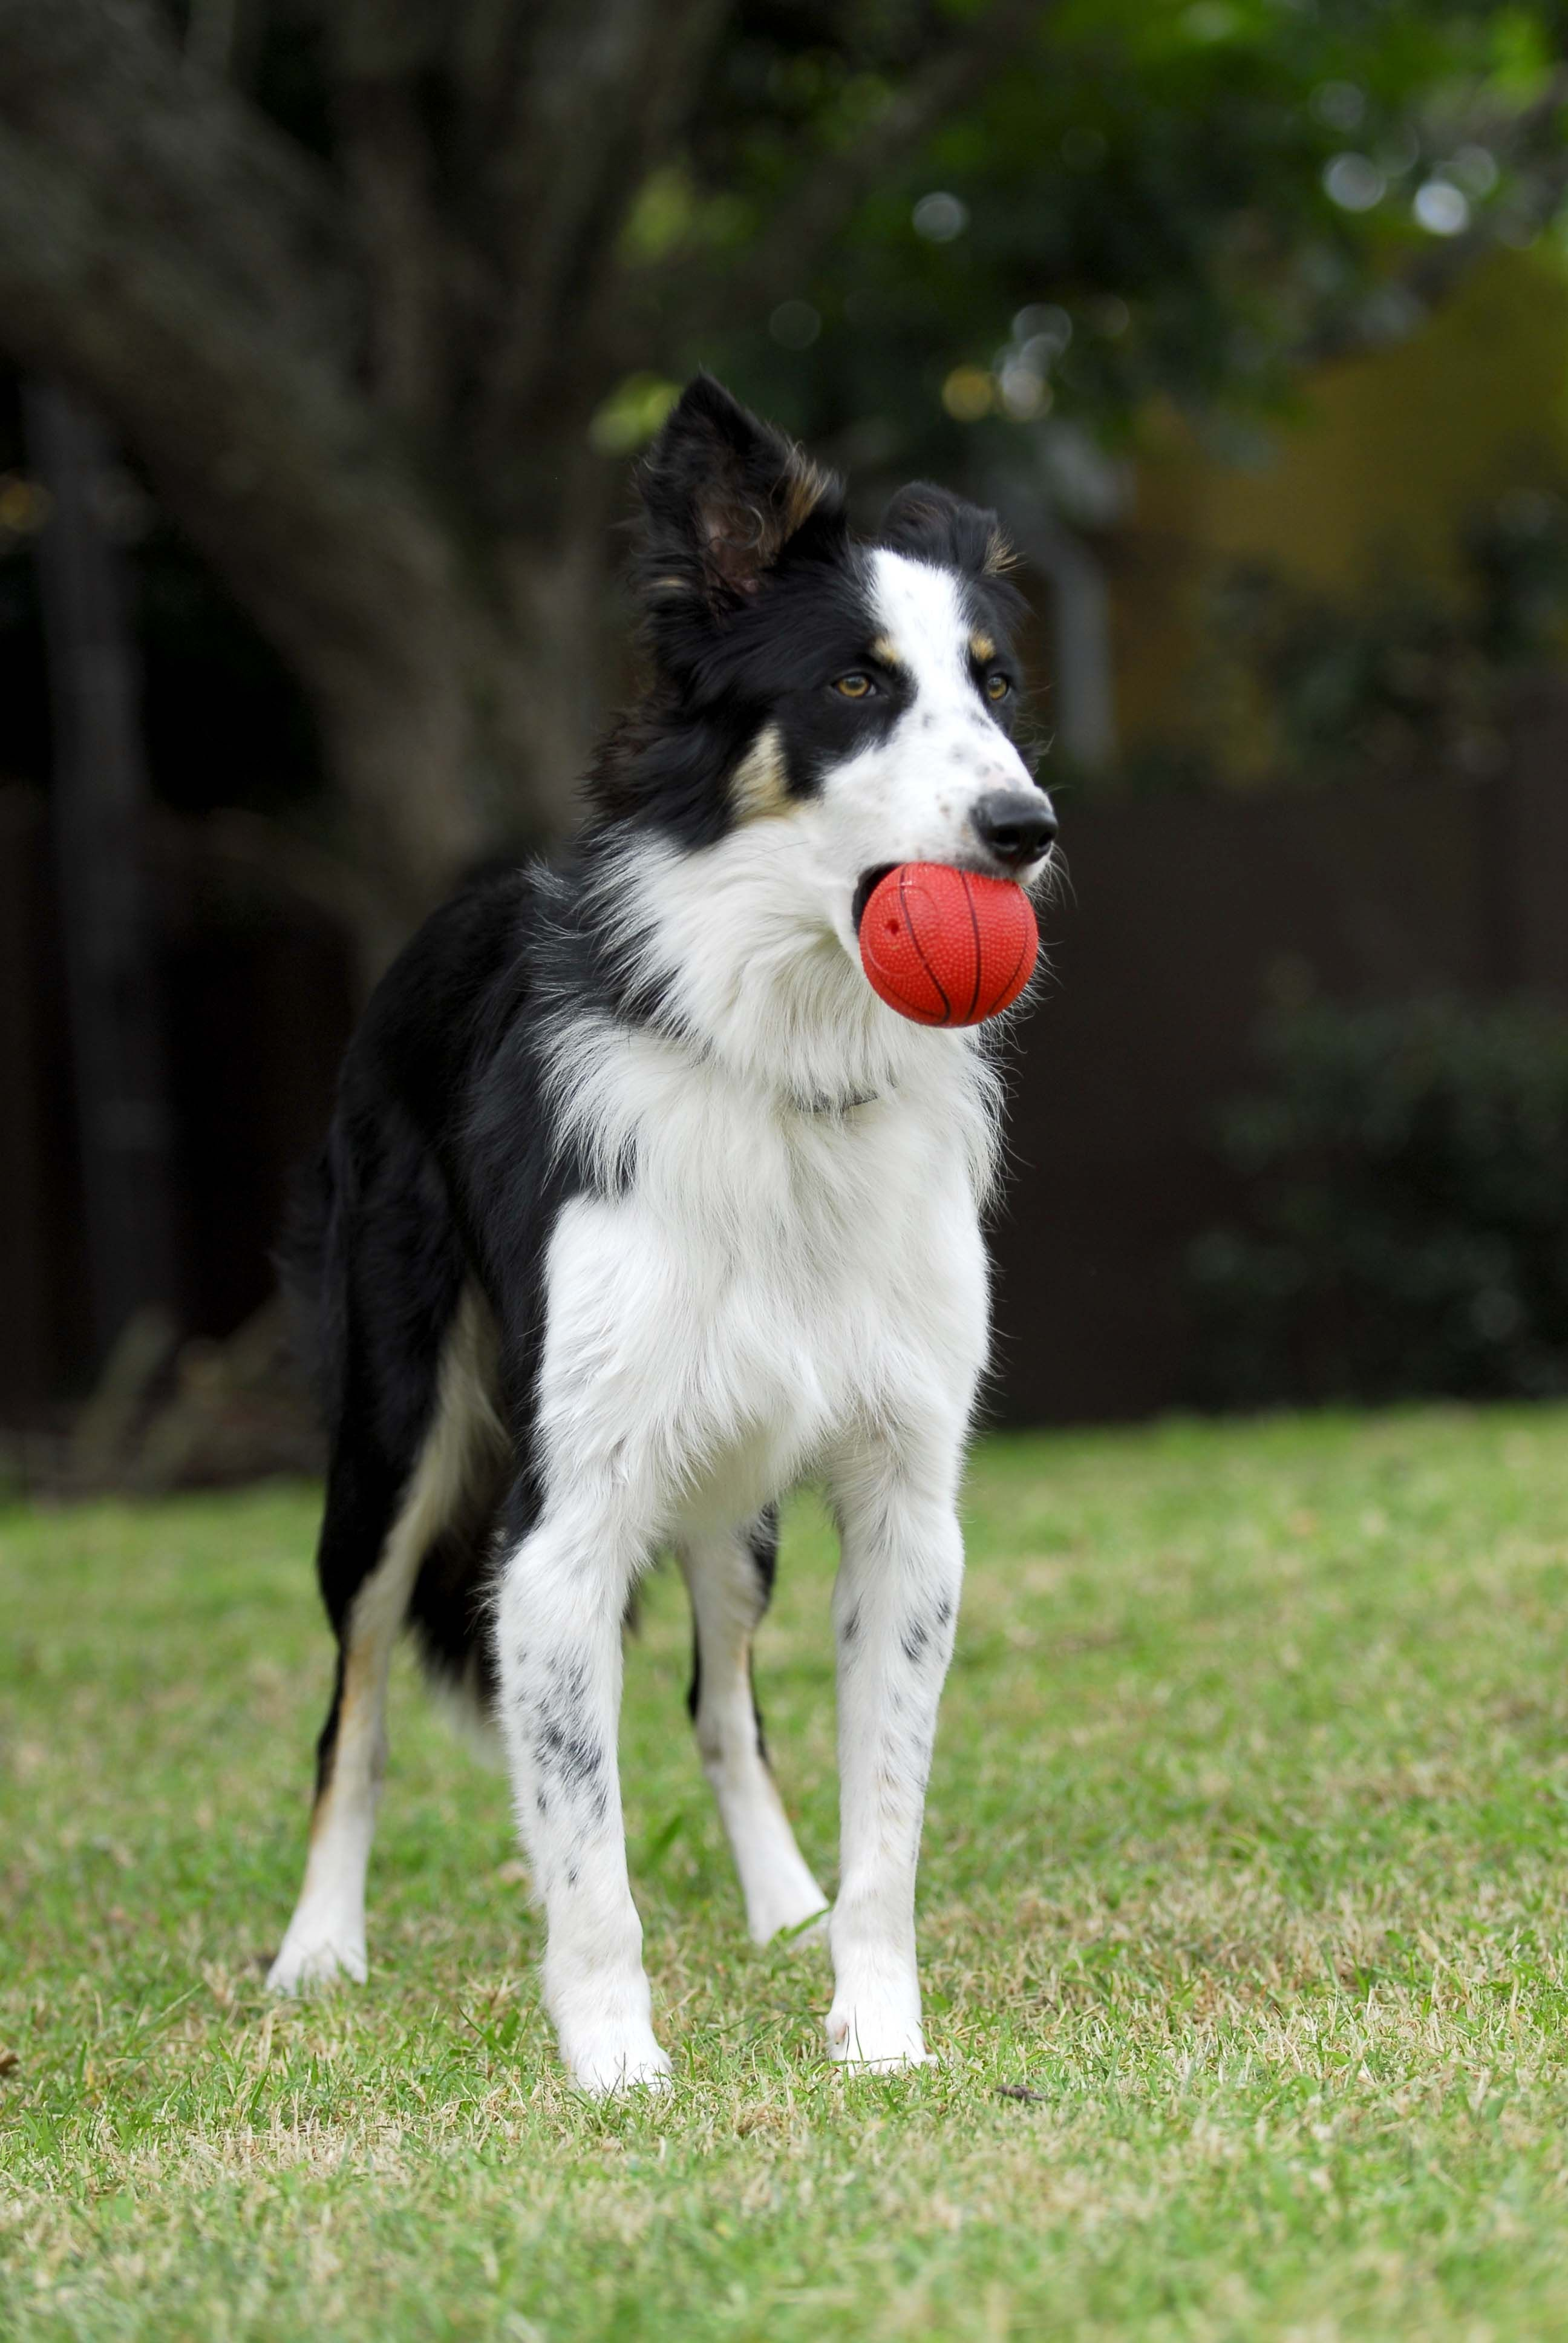 Khei Border Collie Loves The Ball With Images Border Collie Cute Animals Puppy Love